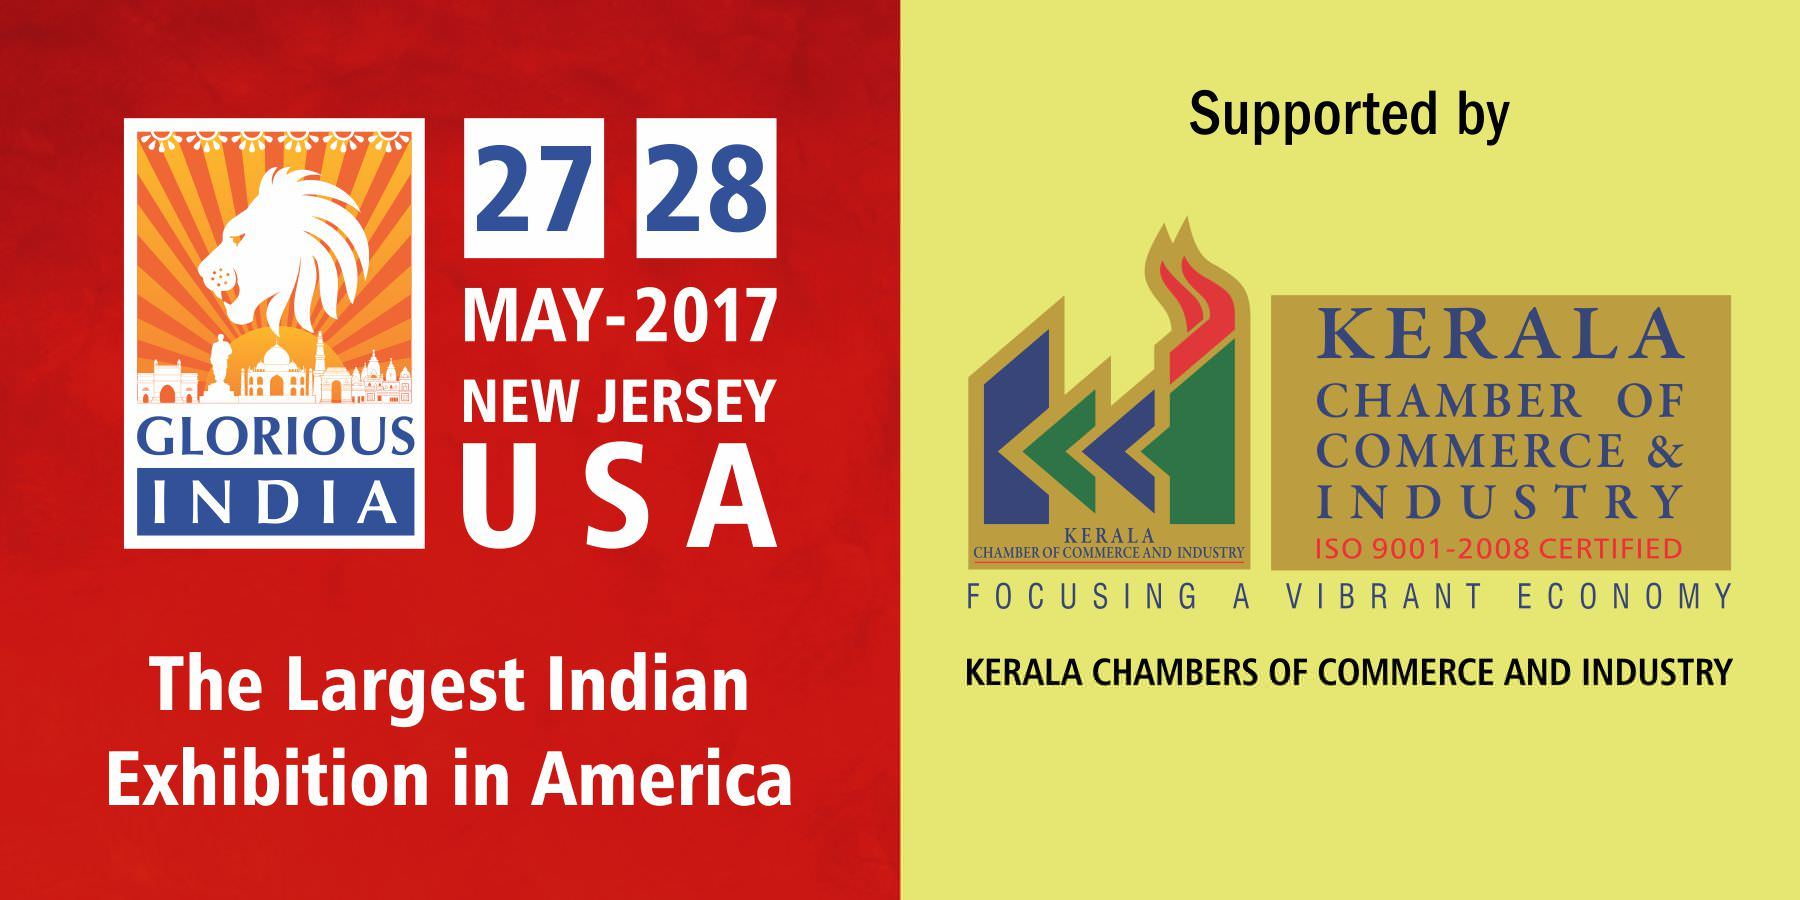 Glorious India Expo - Kerala Chamber of Commerce and Industry